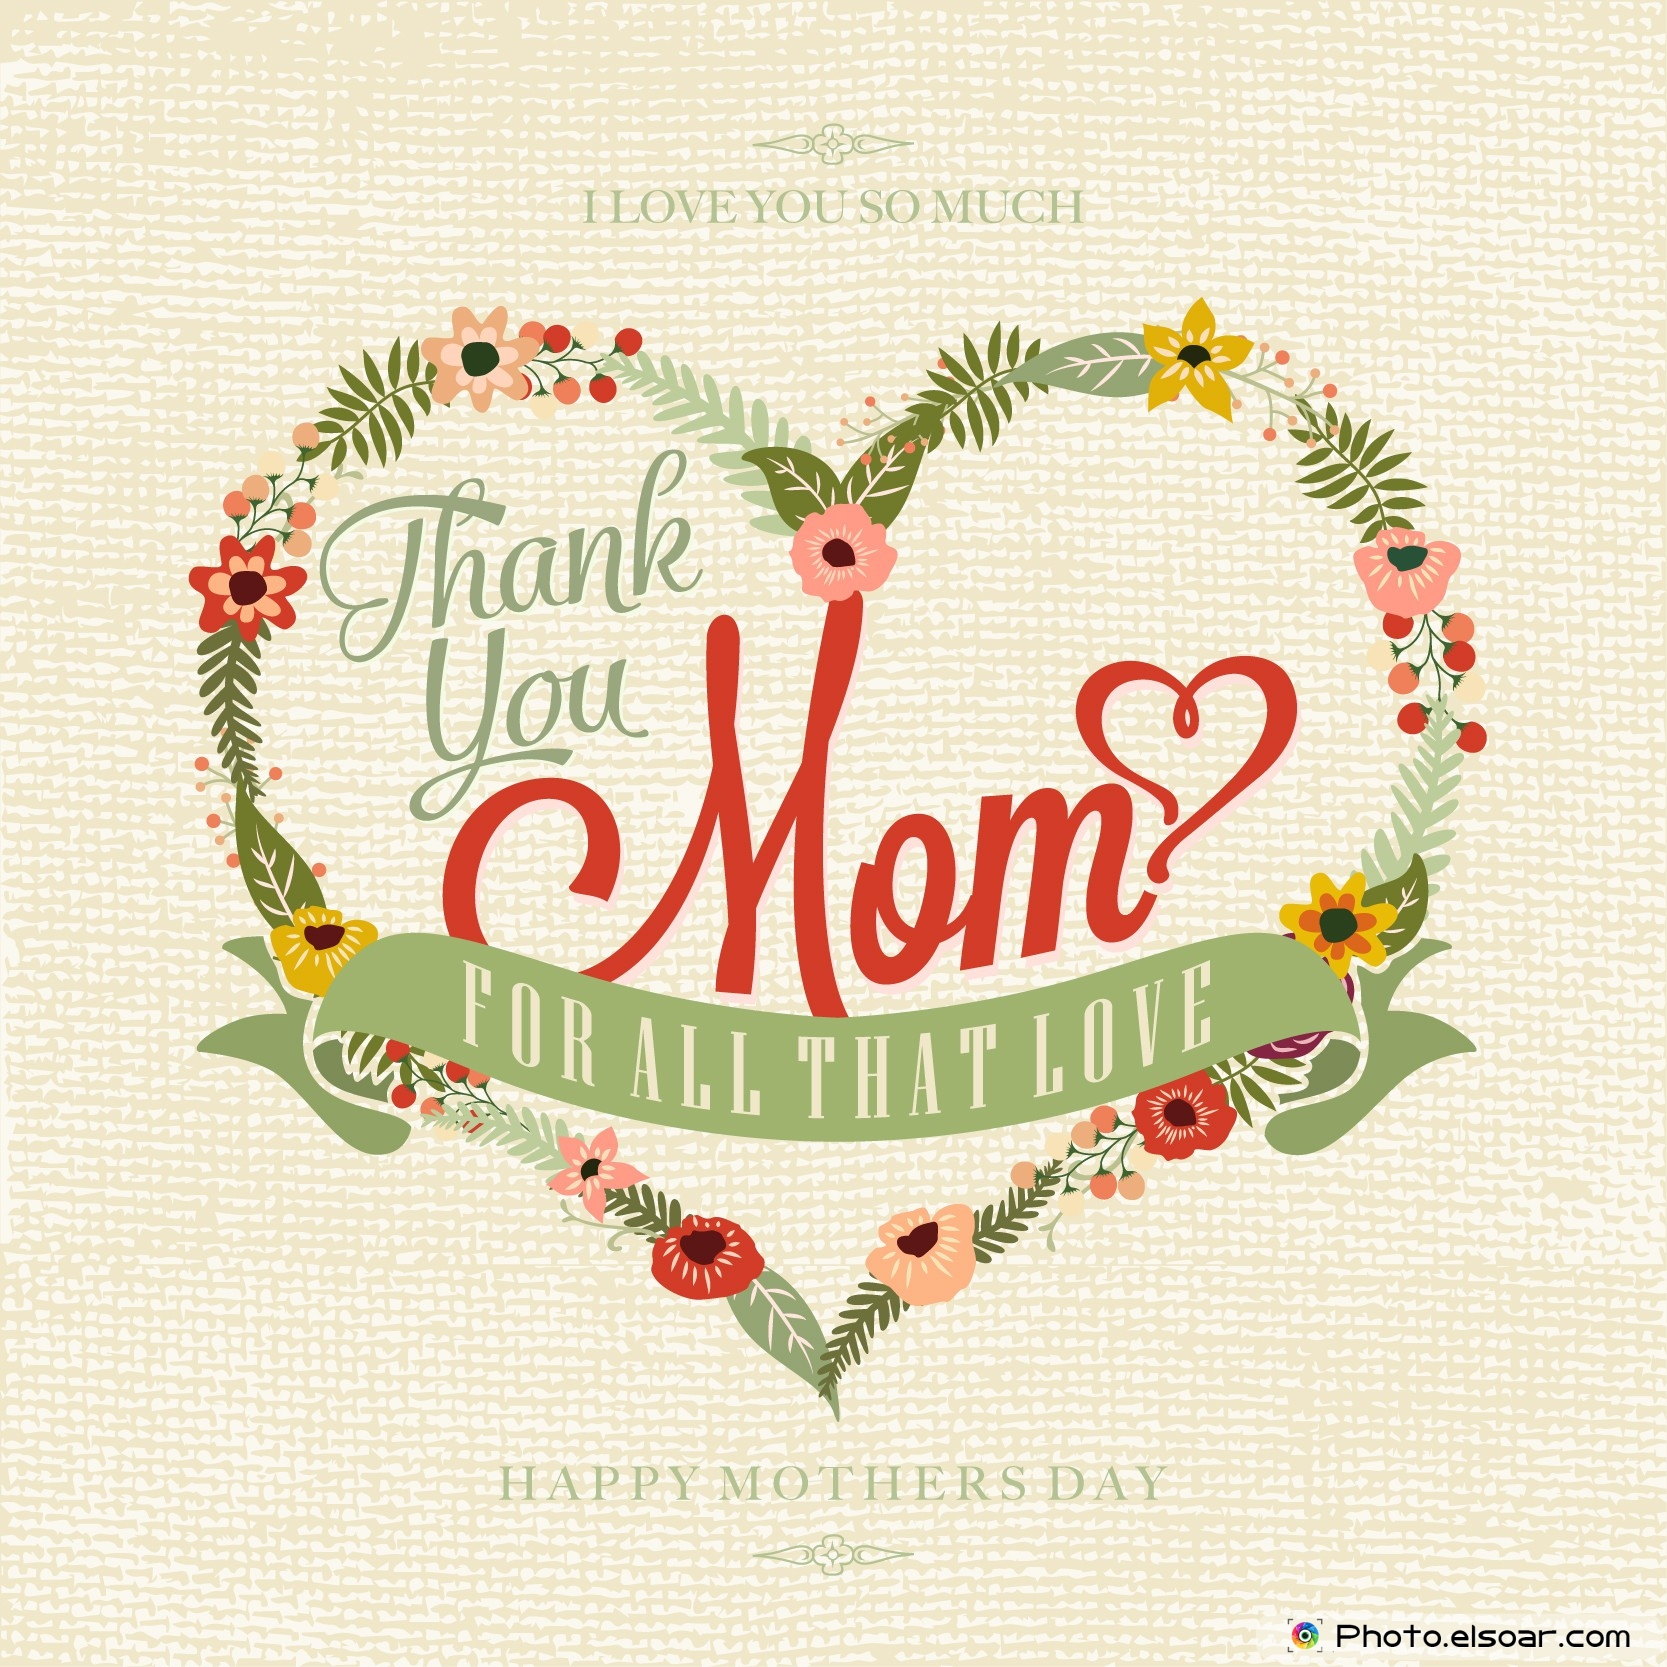 Thank you Mom for all that love